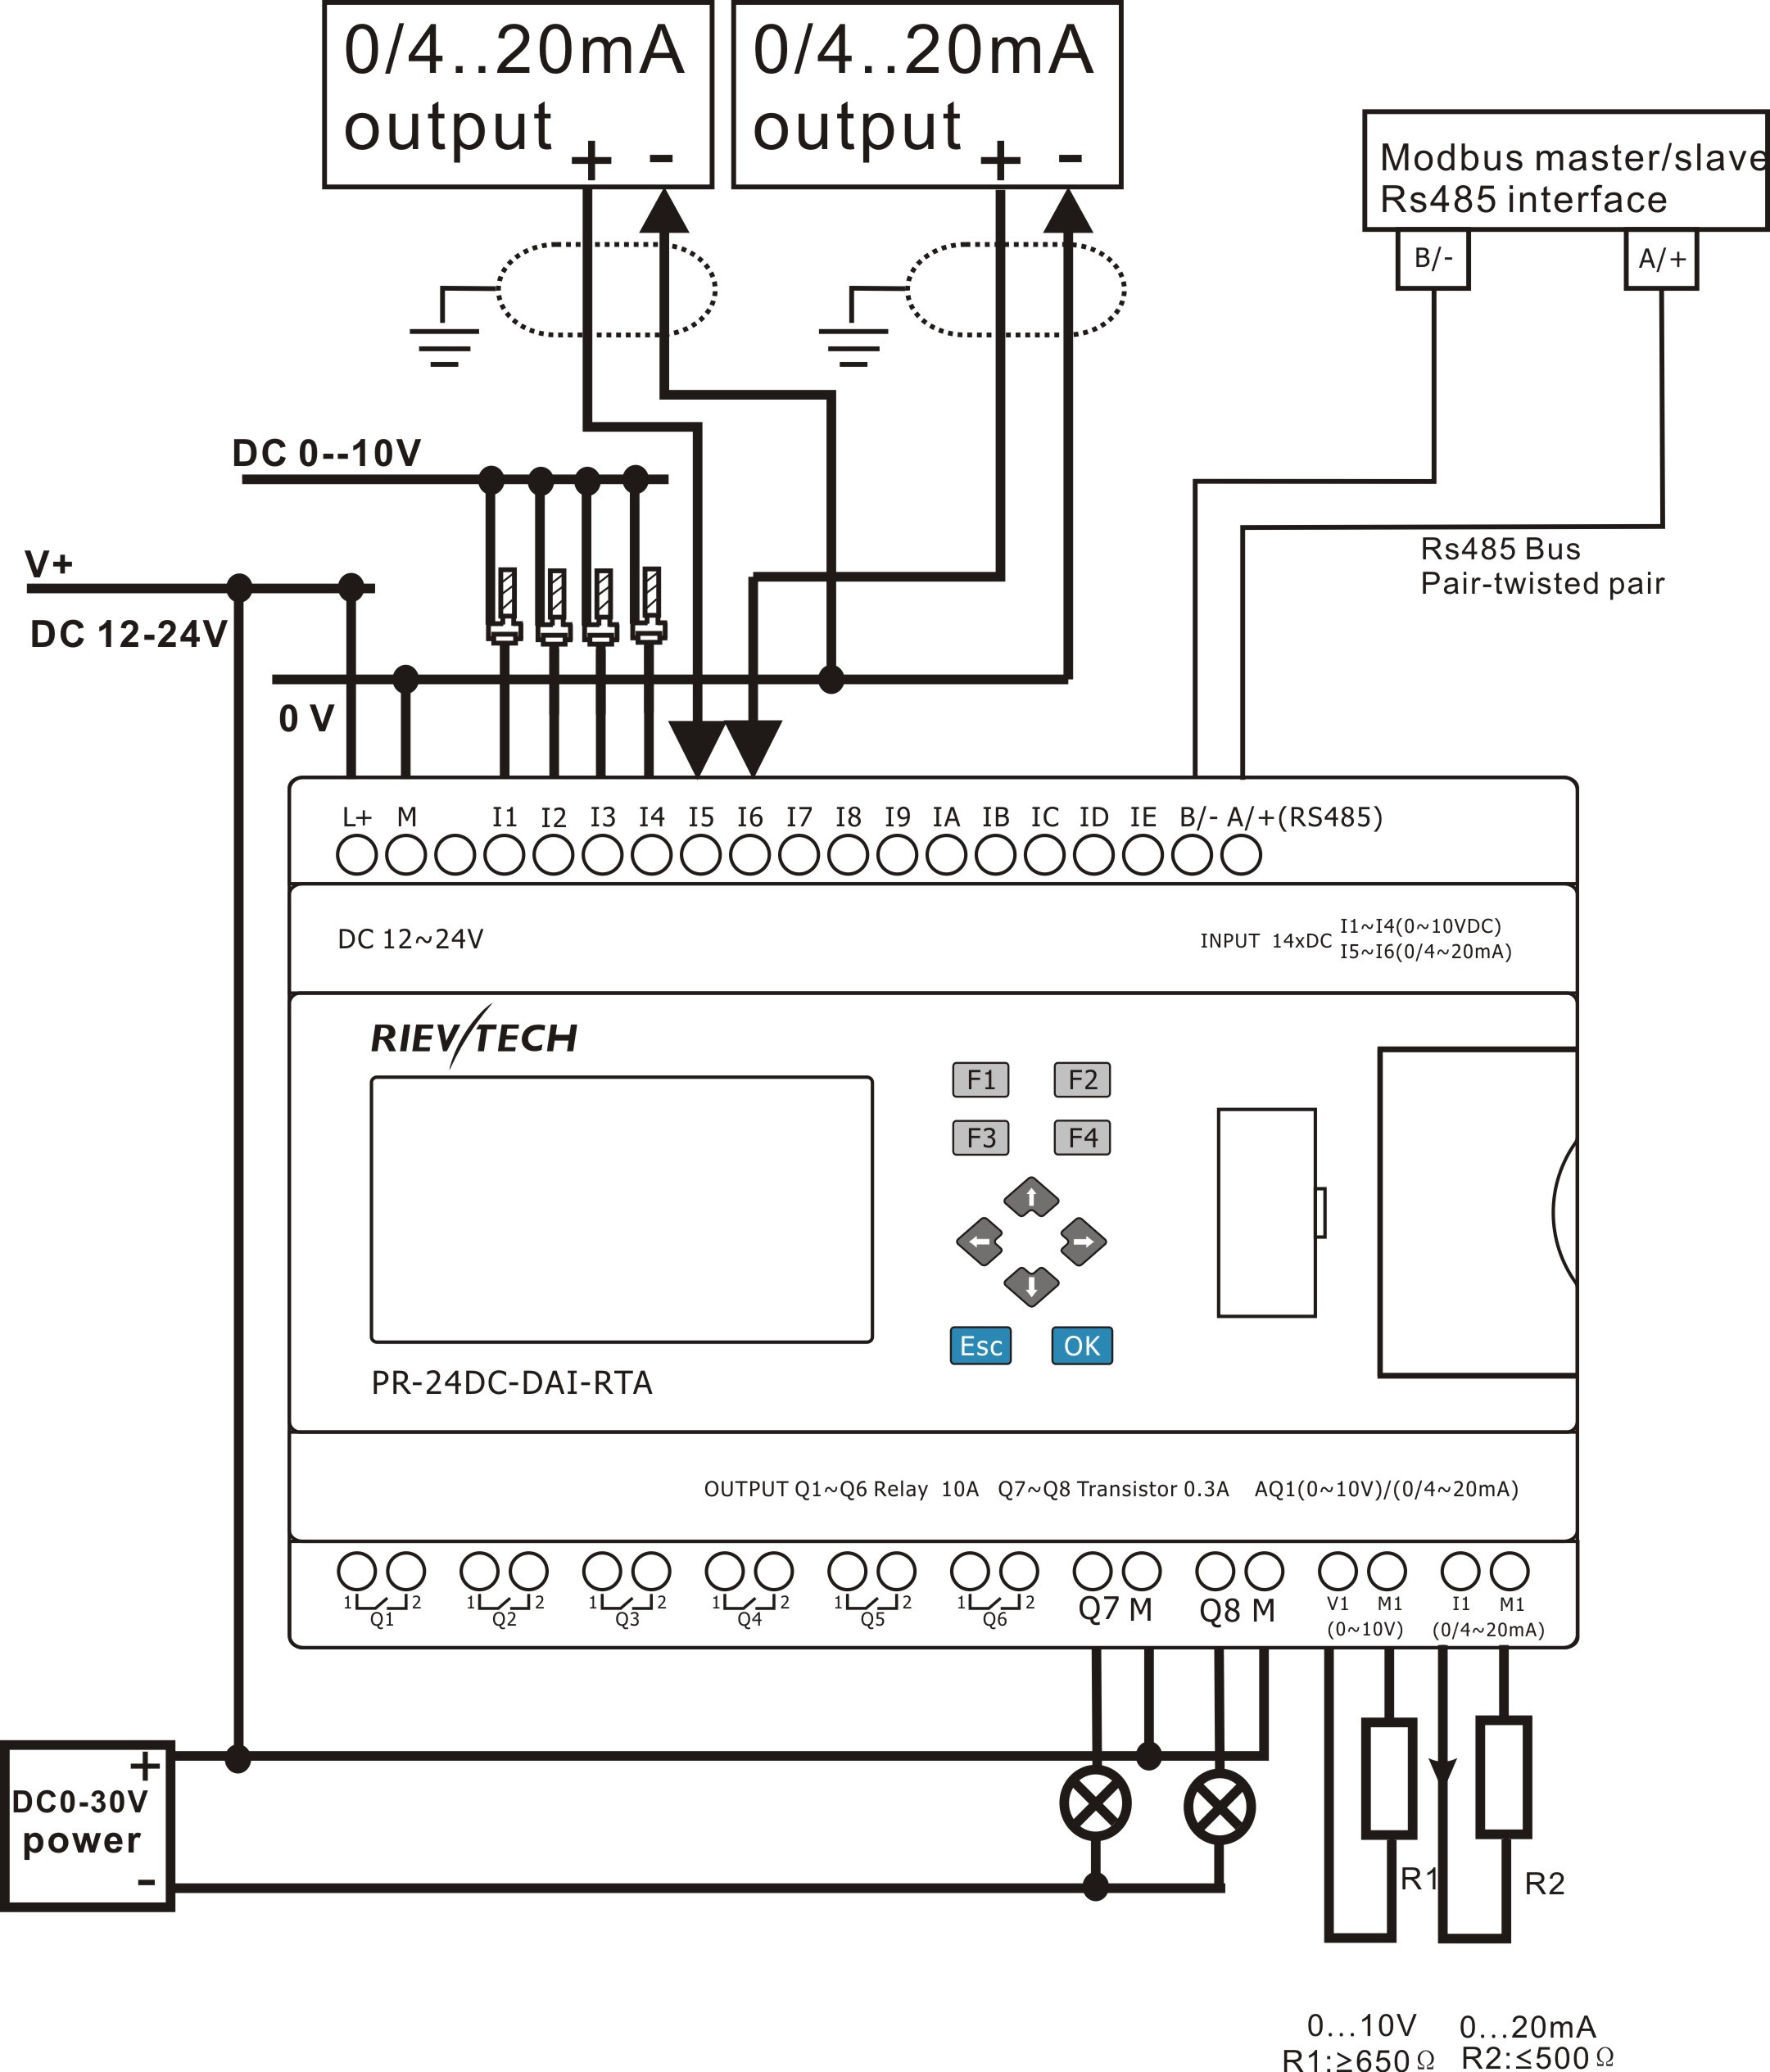 3 Wire Hps Ballast Diagram | Wiring Library - Metal Halide Ballast Wiring Diagram